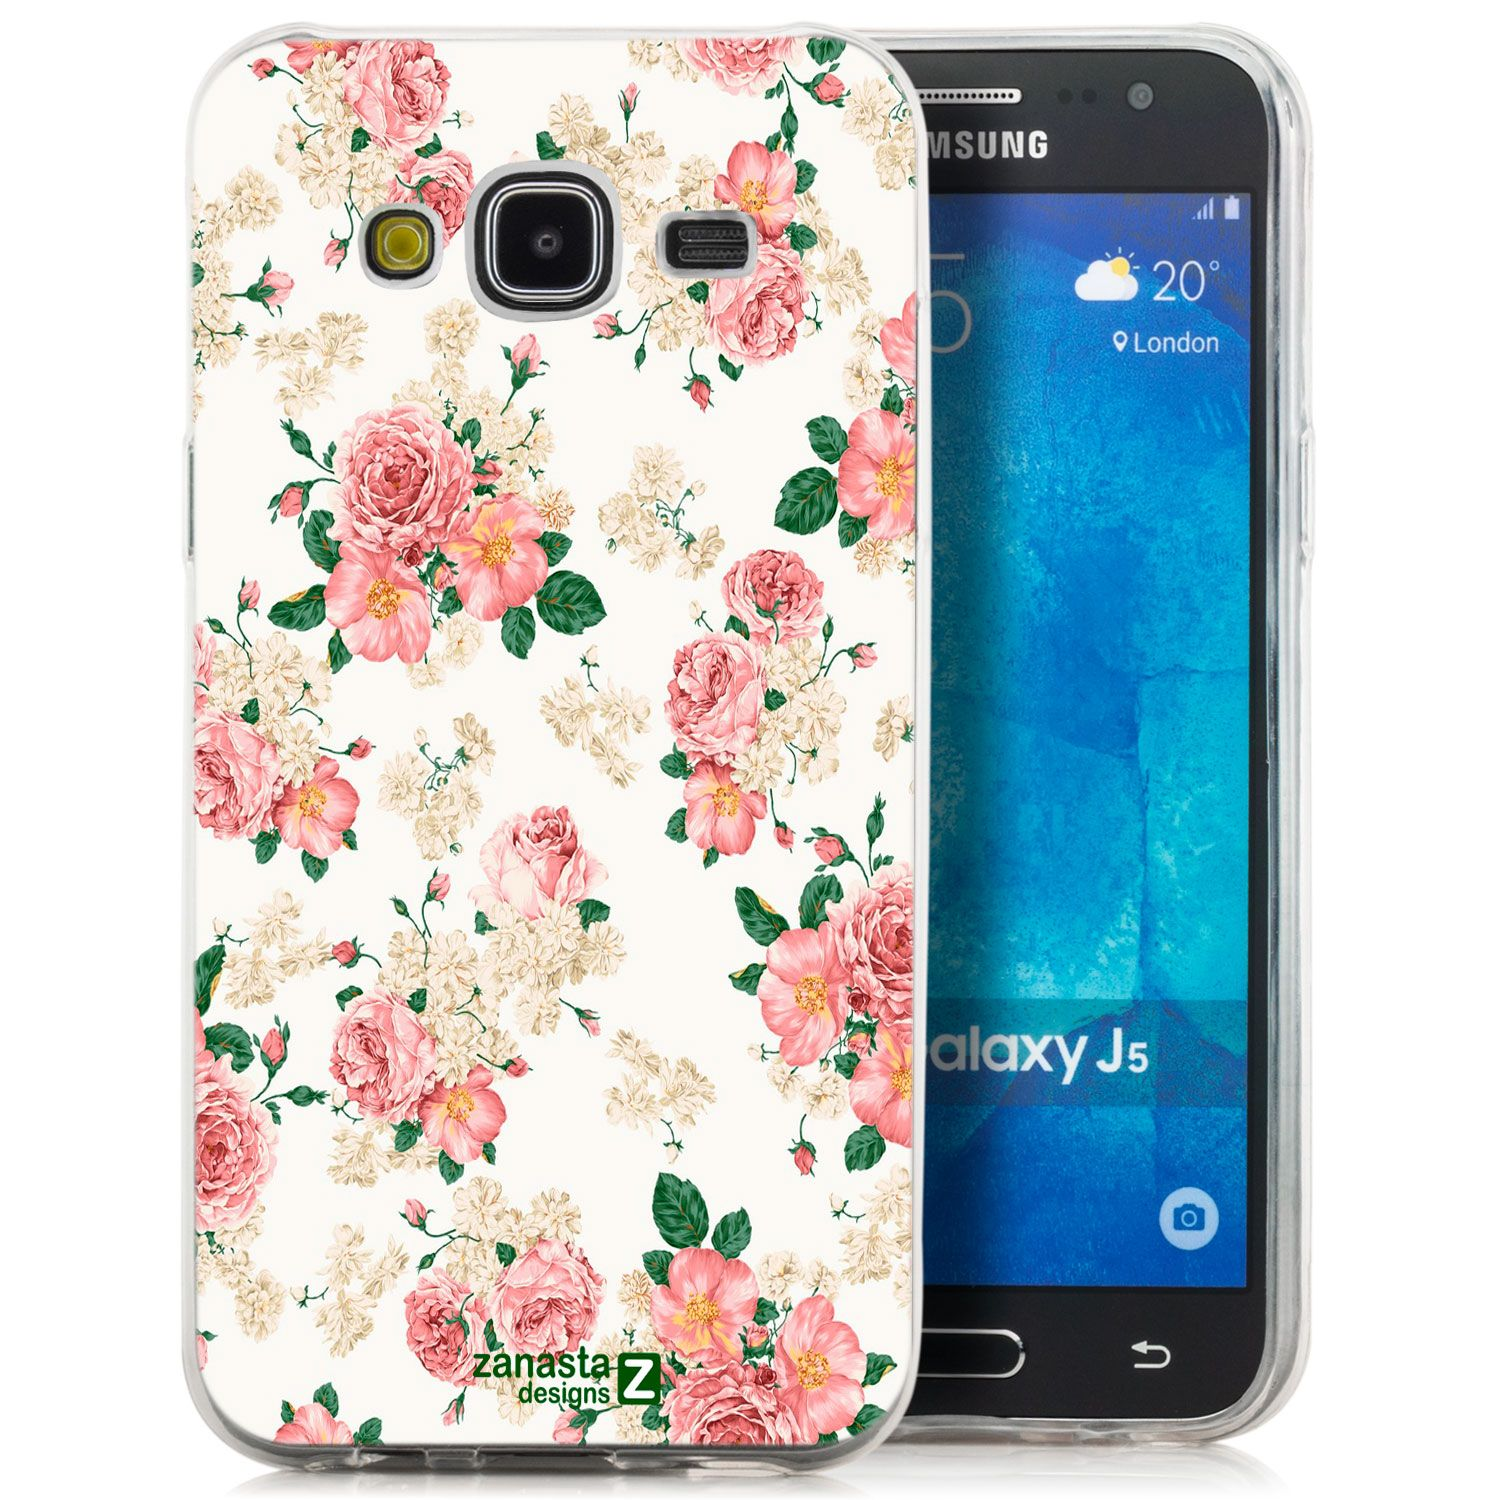 Zanasta Designs Tpu Back Cover Für Samsung Galaxy J5 Roses White